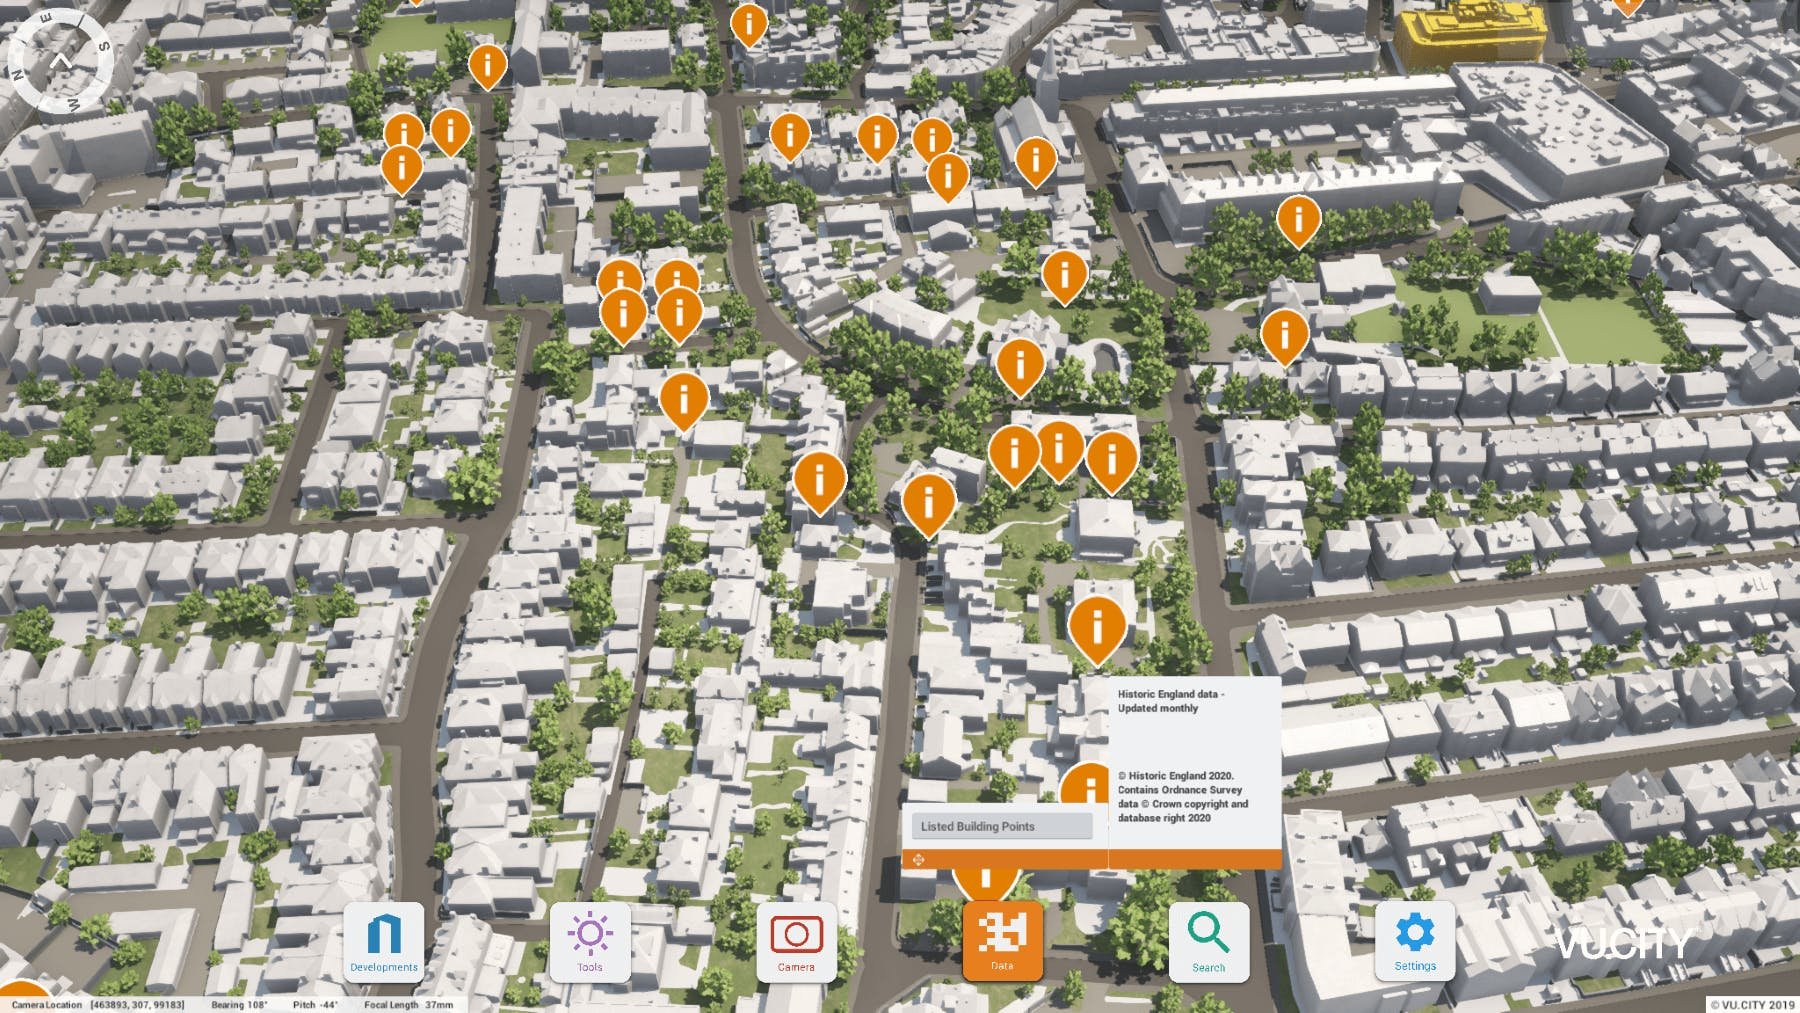 Use Data layers such as Listed Buildings, to help understand an area and reduce research time on site appraisals.